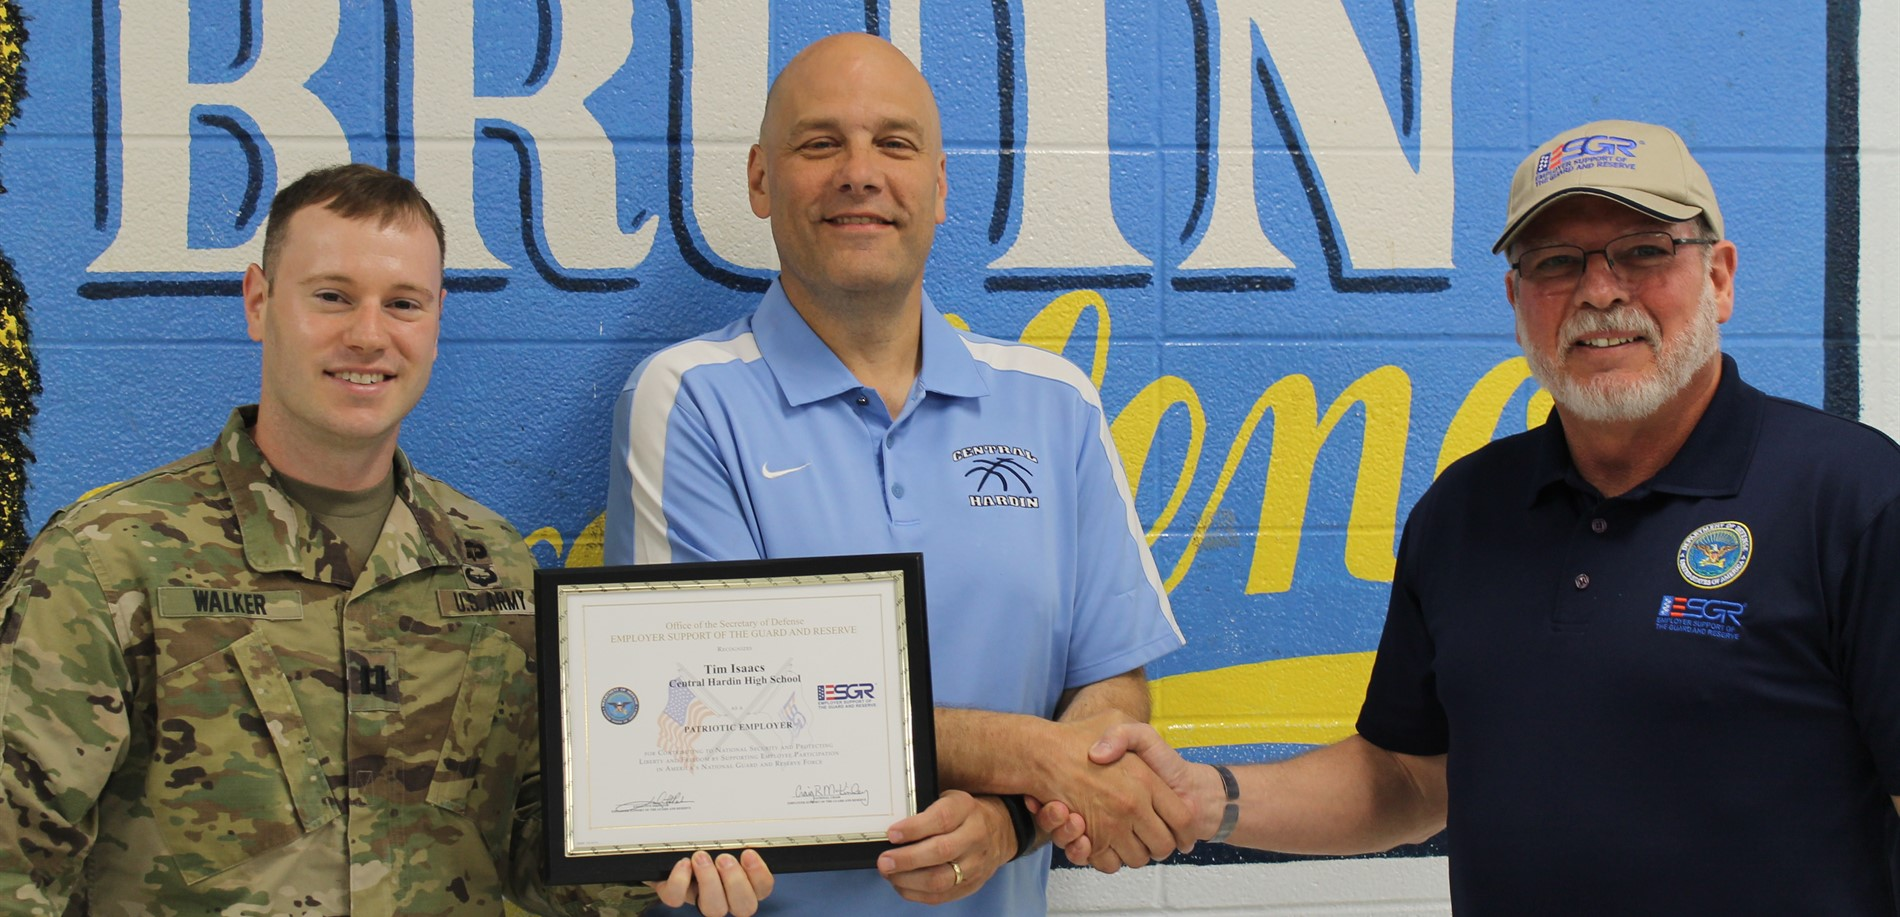 Central Hardin High School Principal Tim Isaacs earned the Patriot Award from the Kentucky National Guard and U.S. Army Cadet Command (ROTC) .